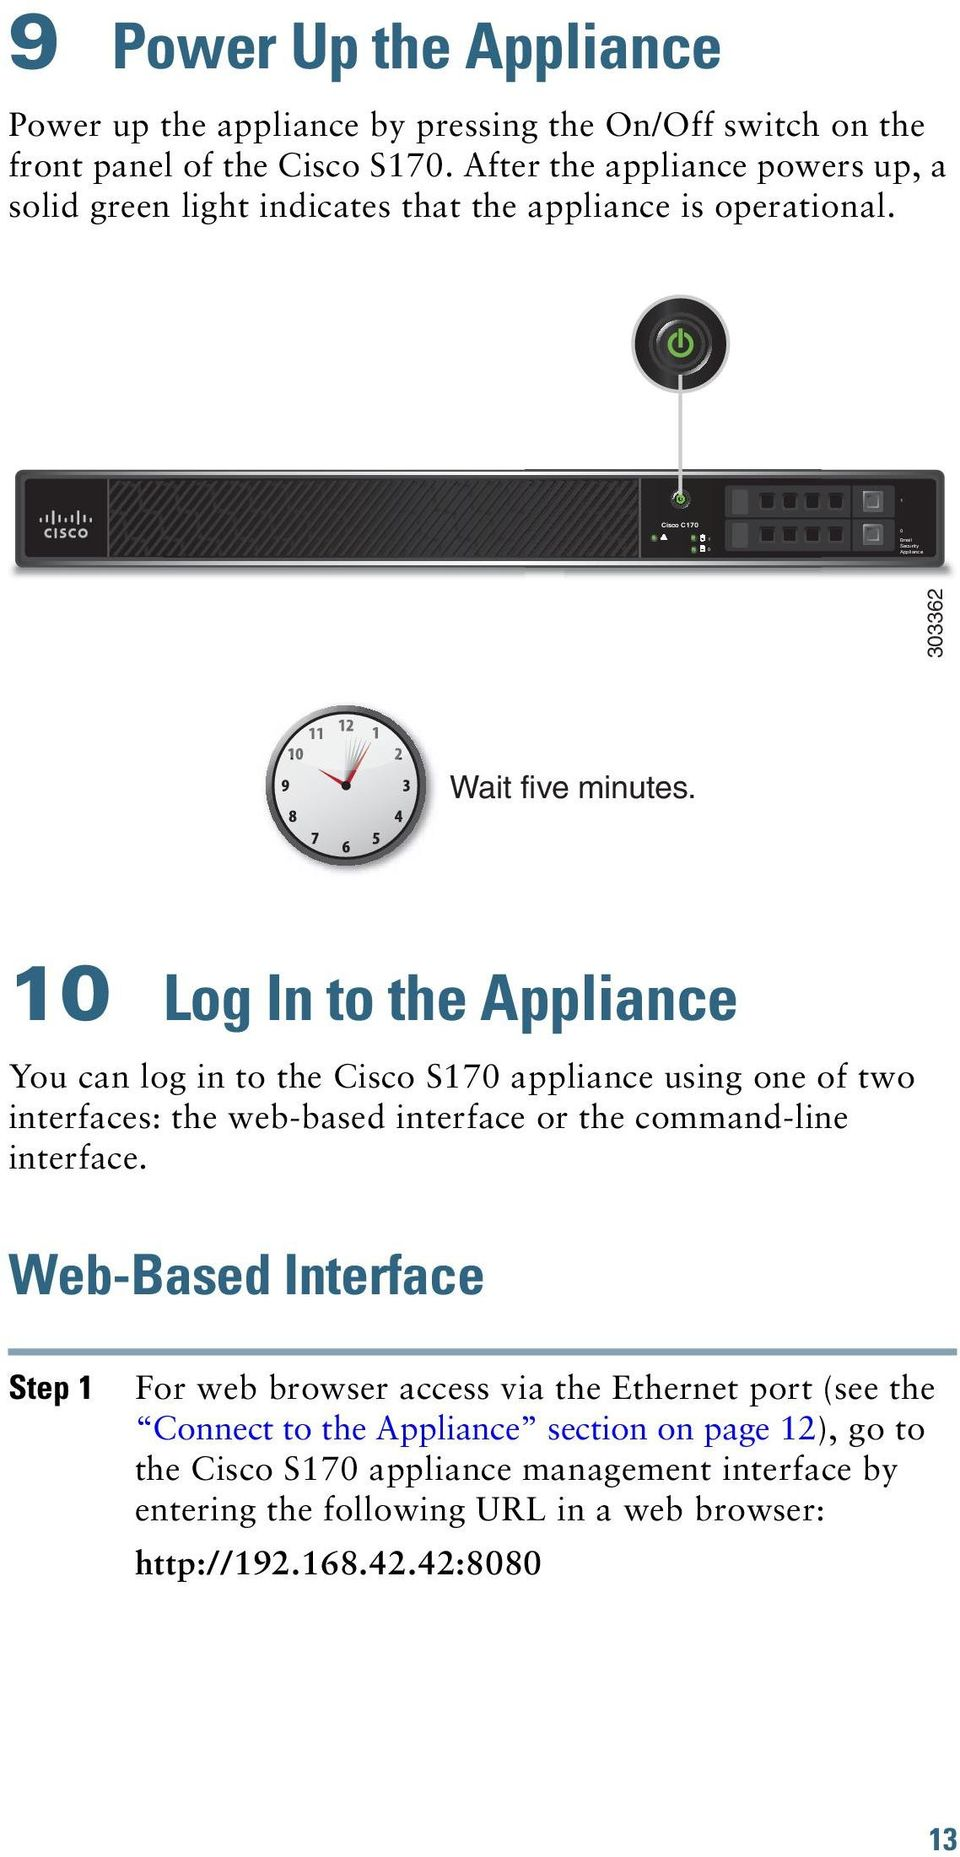 10 Log In to the Appliance You can log in to the Cisco S170 appliance using one of two interfaces: the web-based interface or the command-line interface.